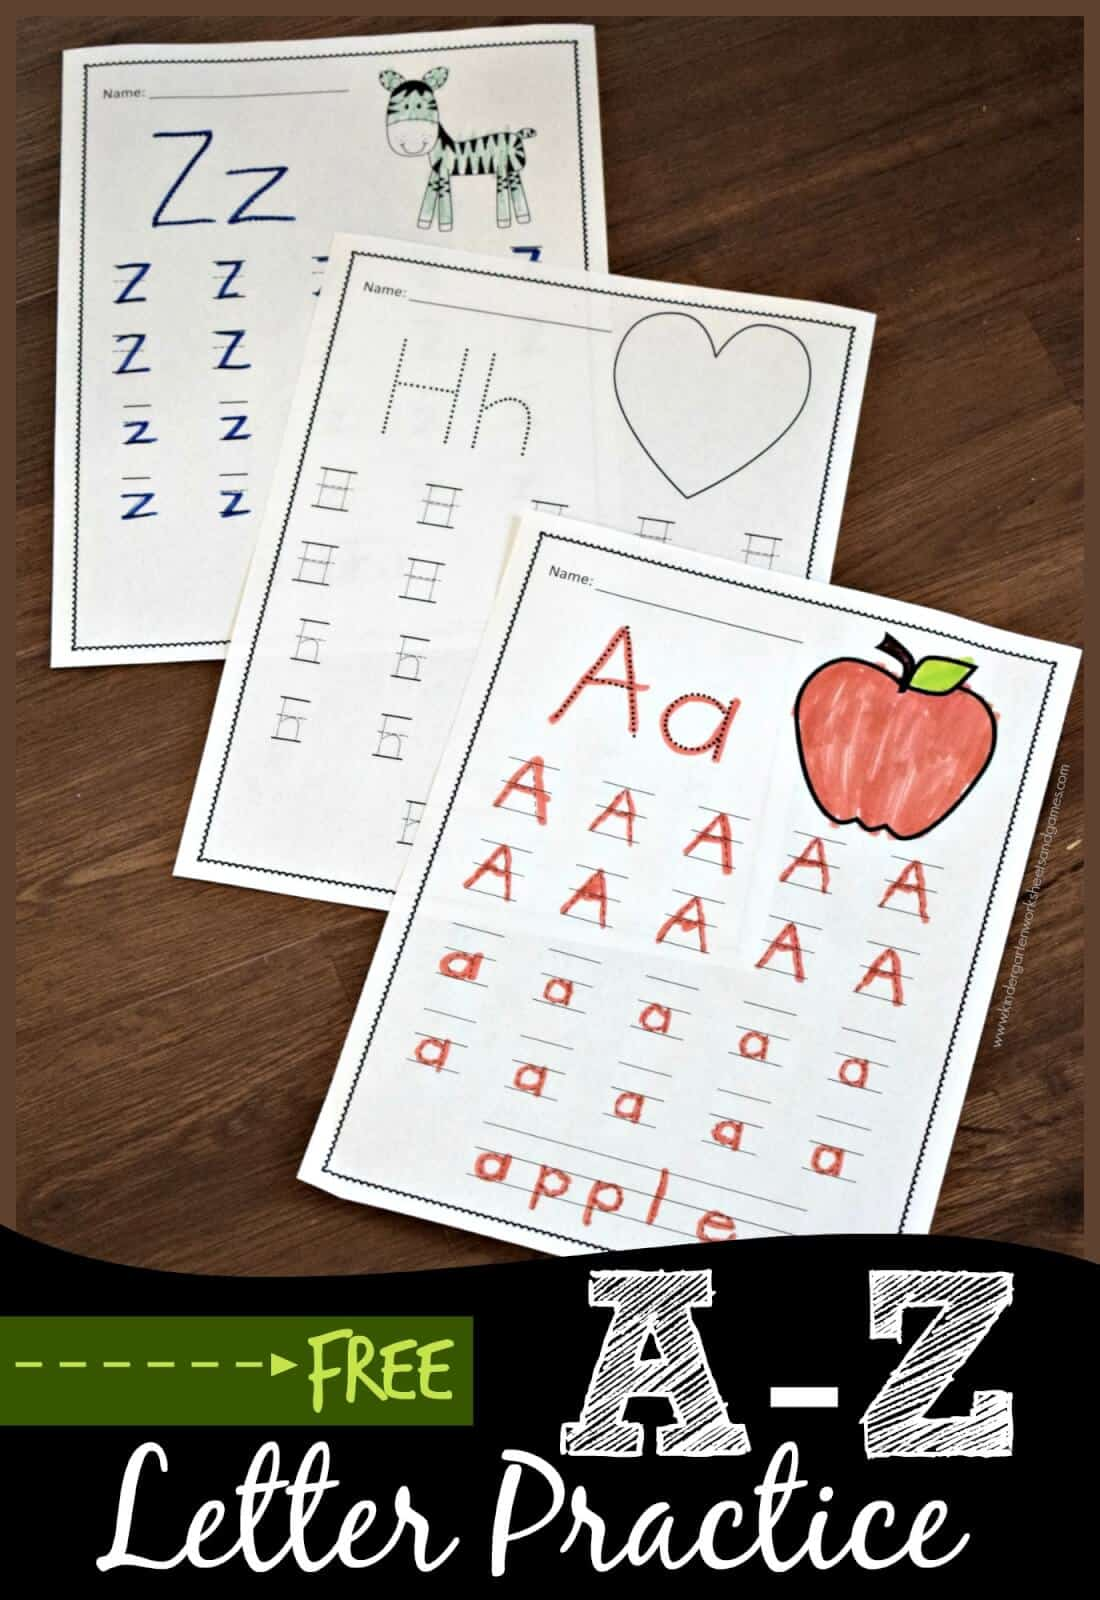 free a to z letter practice kindergarten worksheets and games. Black Bedroom Furniture Sets. Home Design Ideas